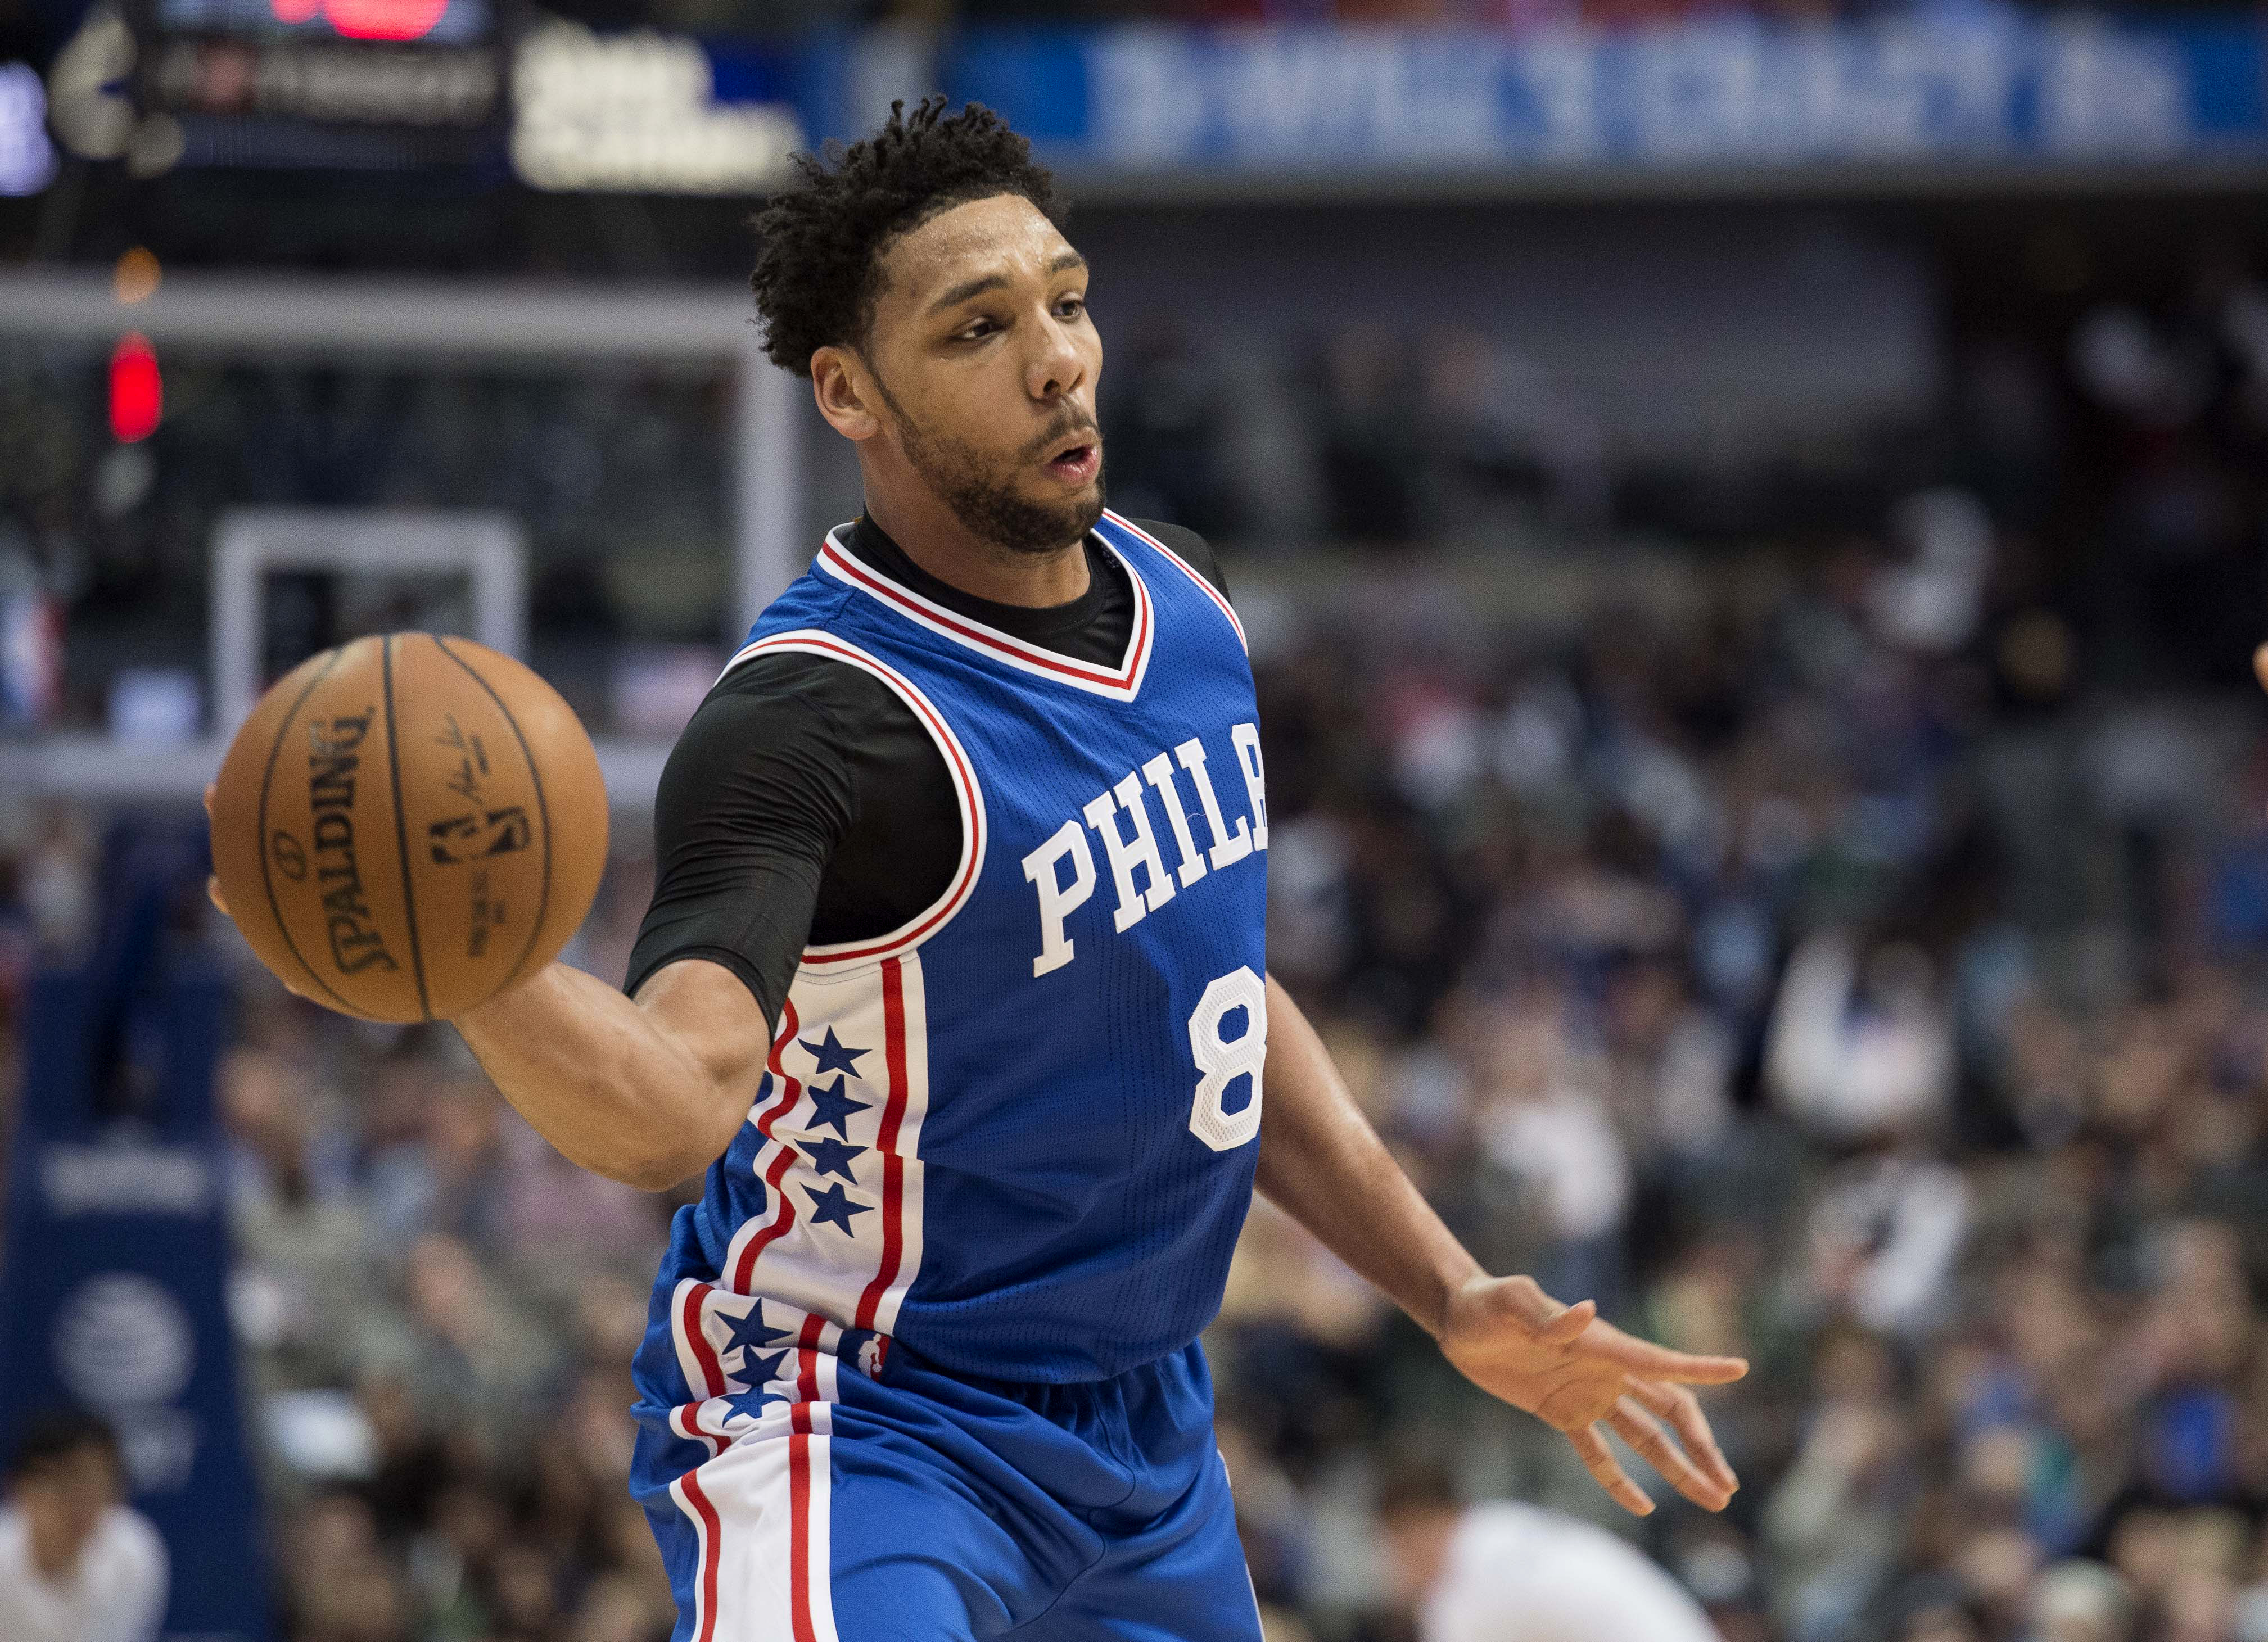 Feb 1, 2017; Dallas, TX, USA; Philadelphia 76ers center Jahlil Okafor (8) passes the ball during the second half against the Dallas Mavericks at the American Airlines Center. The Mavericks defeat the 76ers 113-95. Mandatory Credit: Jerome Miron-USA TODAY Sports